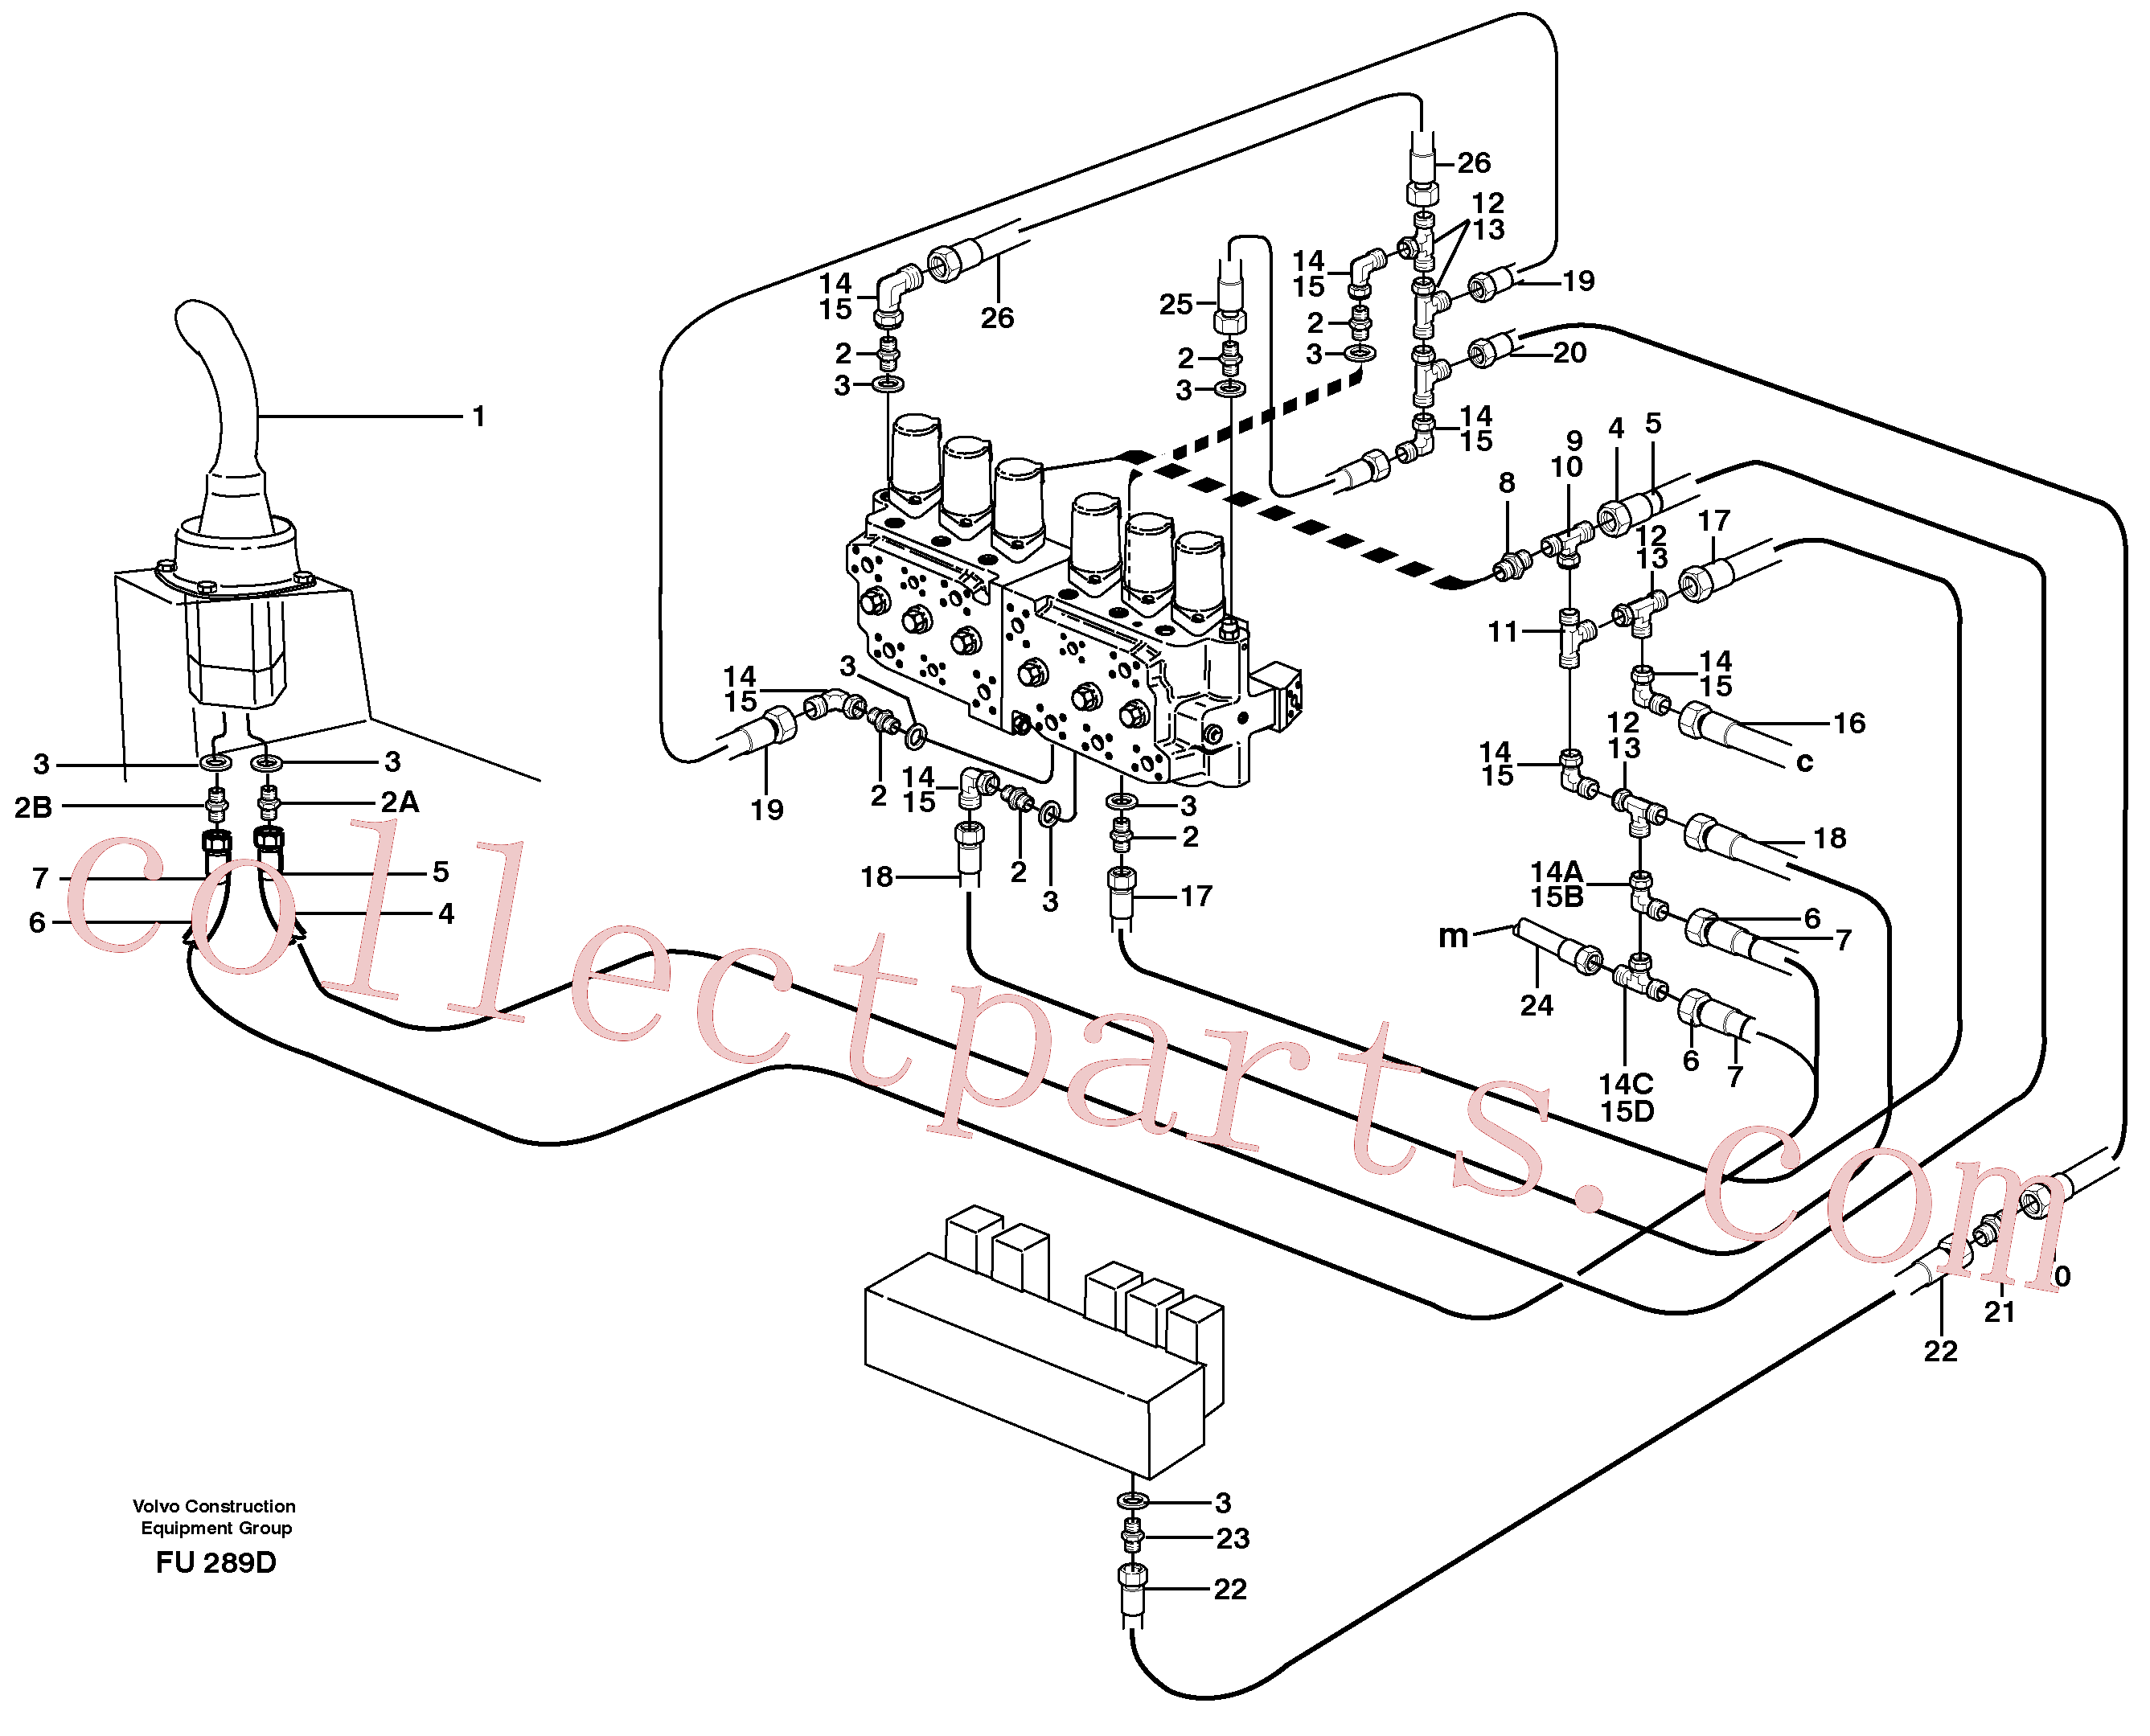 ZM7091906 for Volvo Servo hydraulics, dipper arm(FU289D assembly)